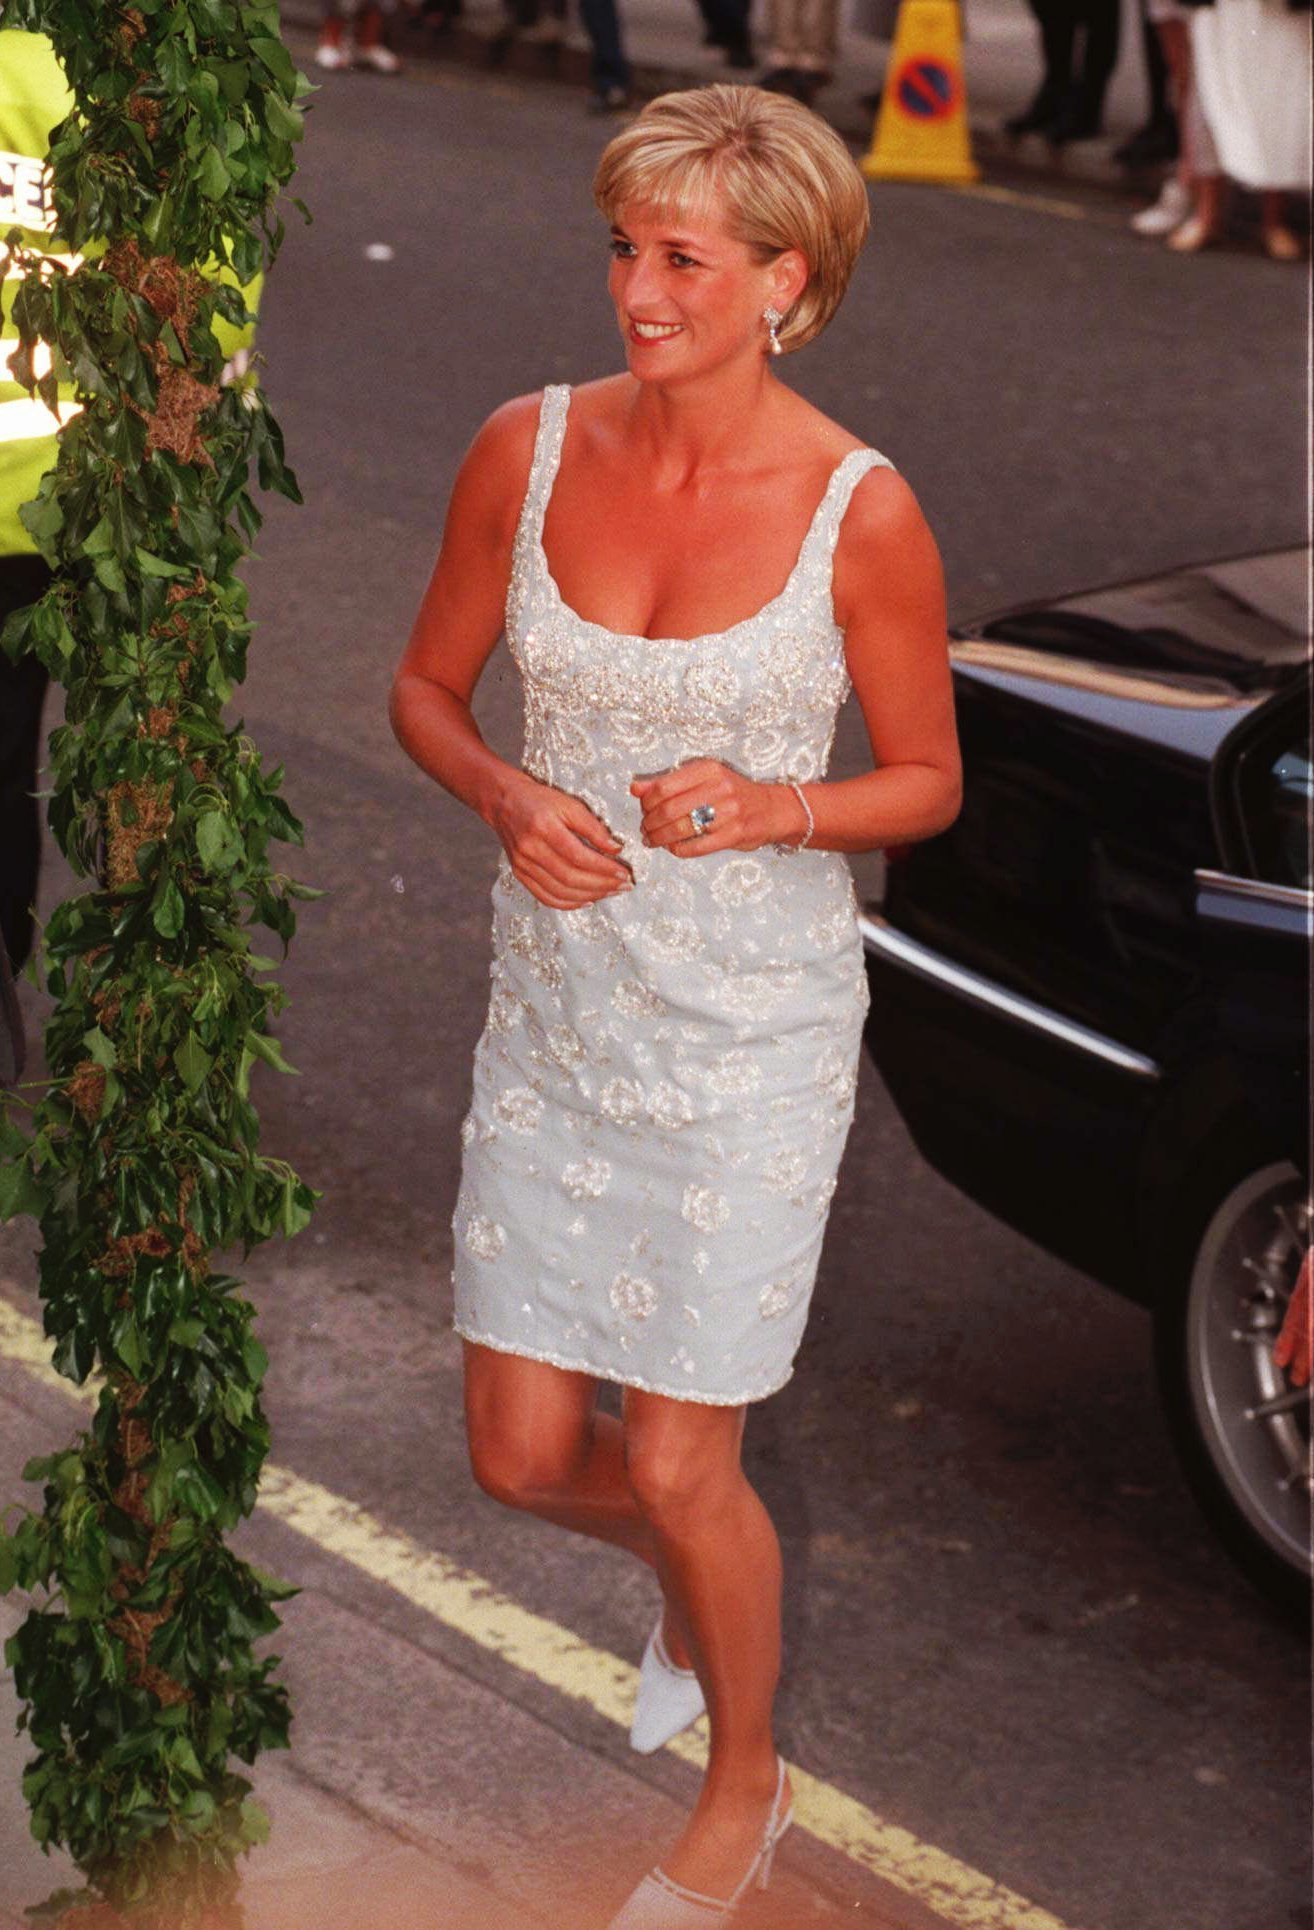 "FILE- In this Monday, June 2, 1997 file photo, Britain's Diana, Princess of Wales, arrives at Christie's Auction house in London to attend a private viewing and reception in aid of AIDS Crisis Trust and The Royal Marsden Hospital Cancer Fund. It has been 20 years since the death of Princess Diana in a car crash in Paris and the outpouring of grief that followed the death of the ""people's princess."" (AP Photo/Jacqueline Arzt, File)"